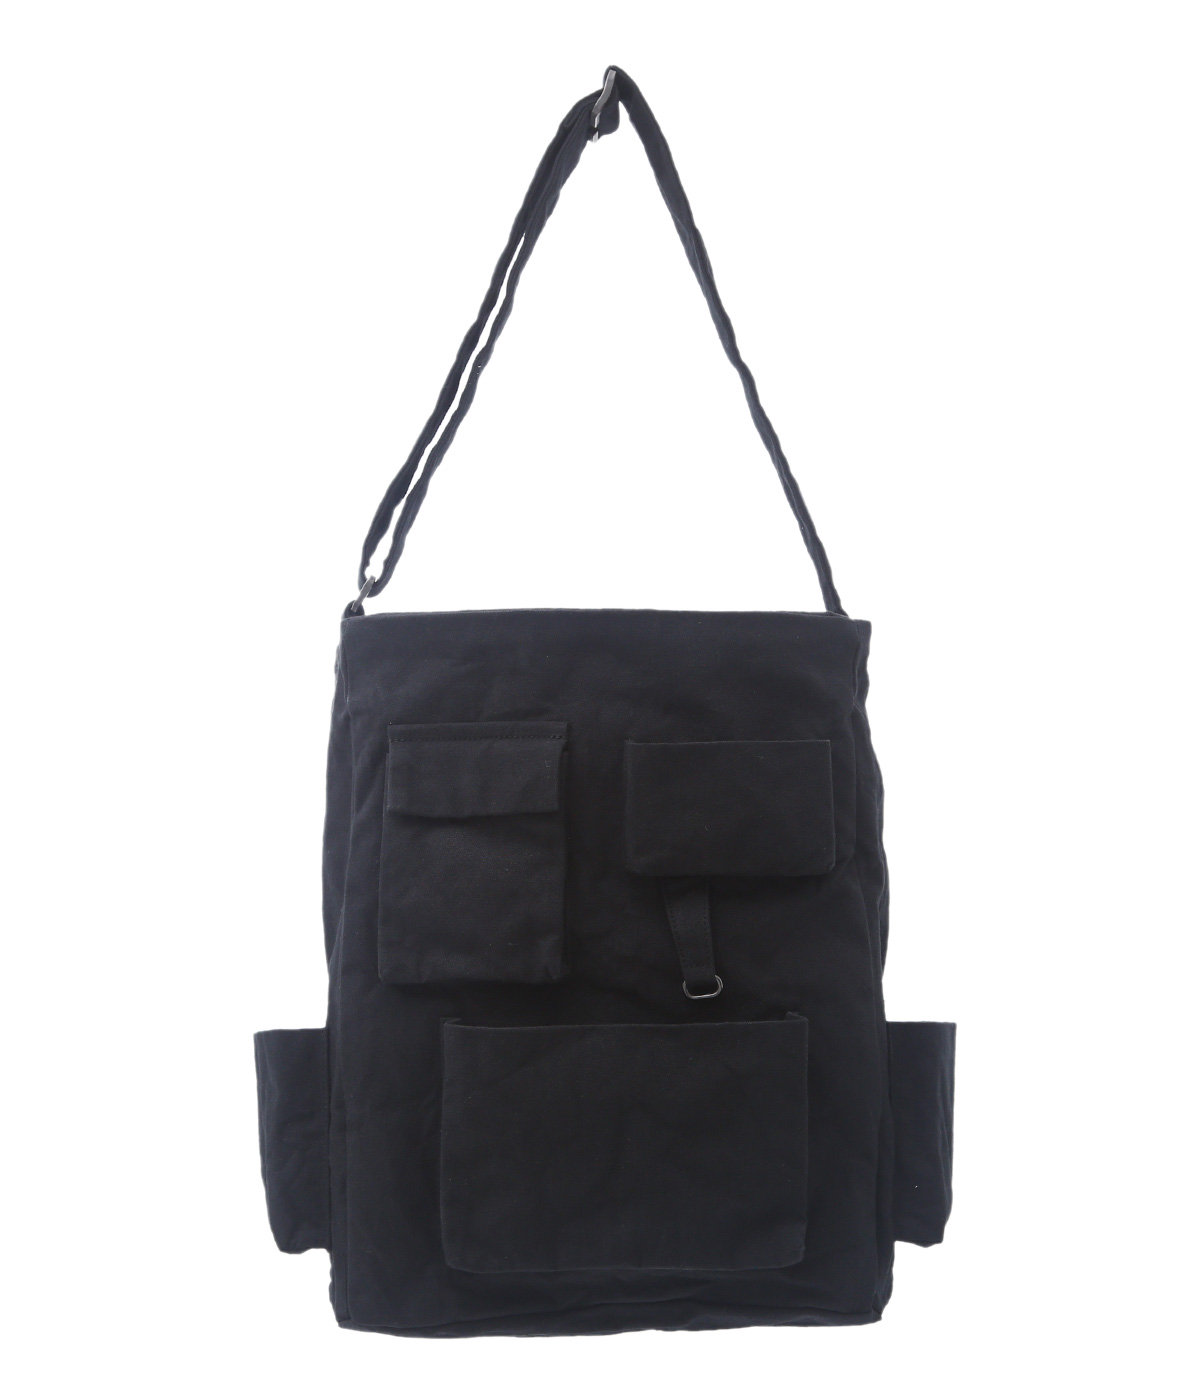 CHACOLI TG THE JOINER BAG